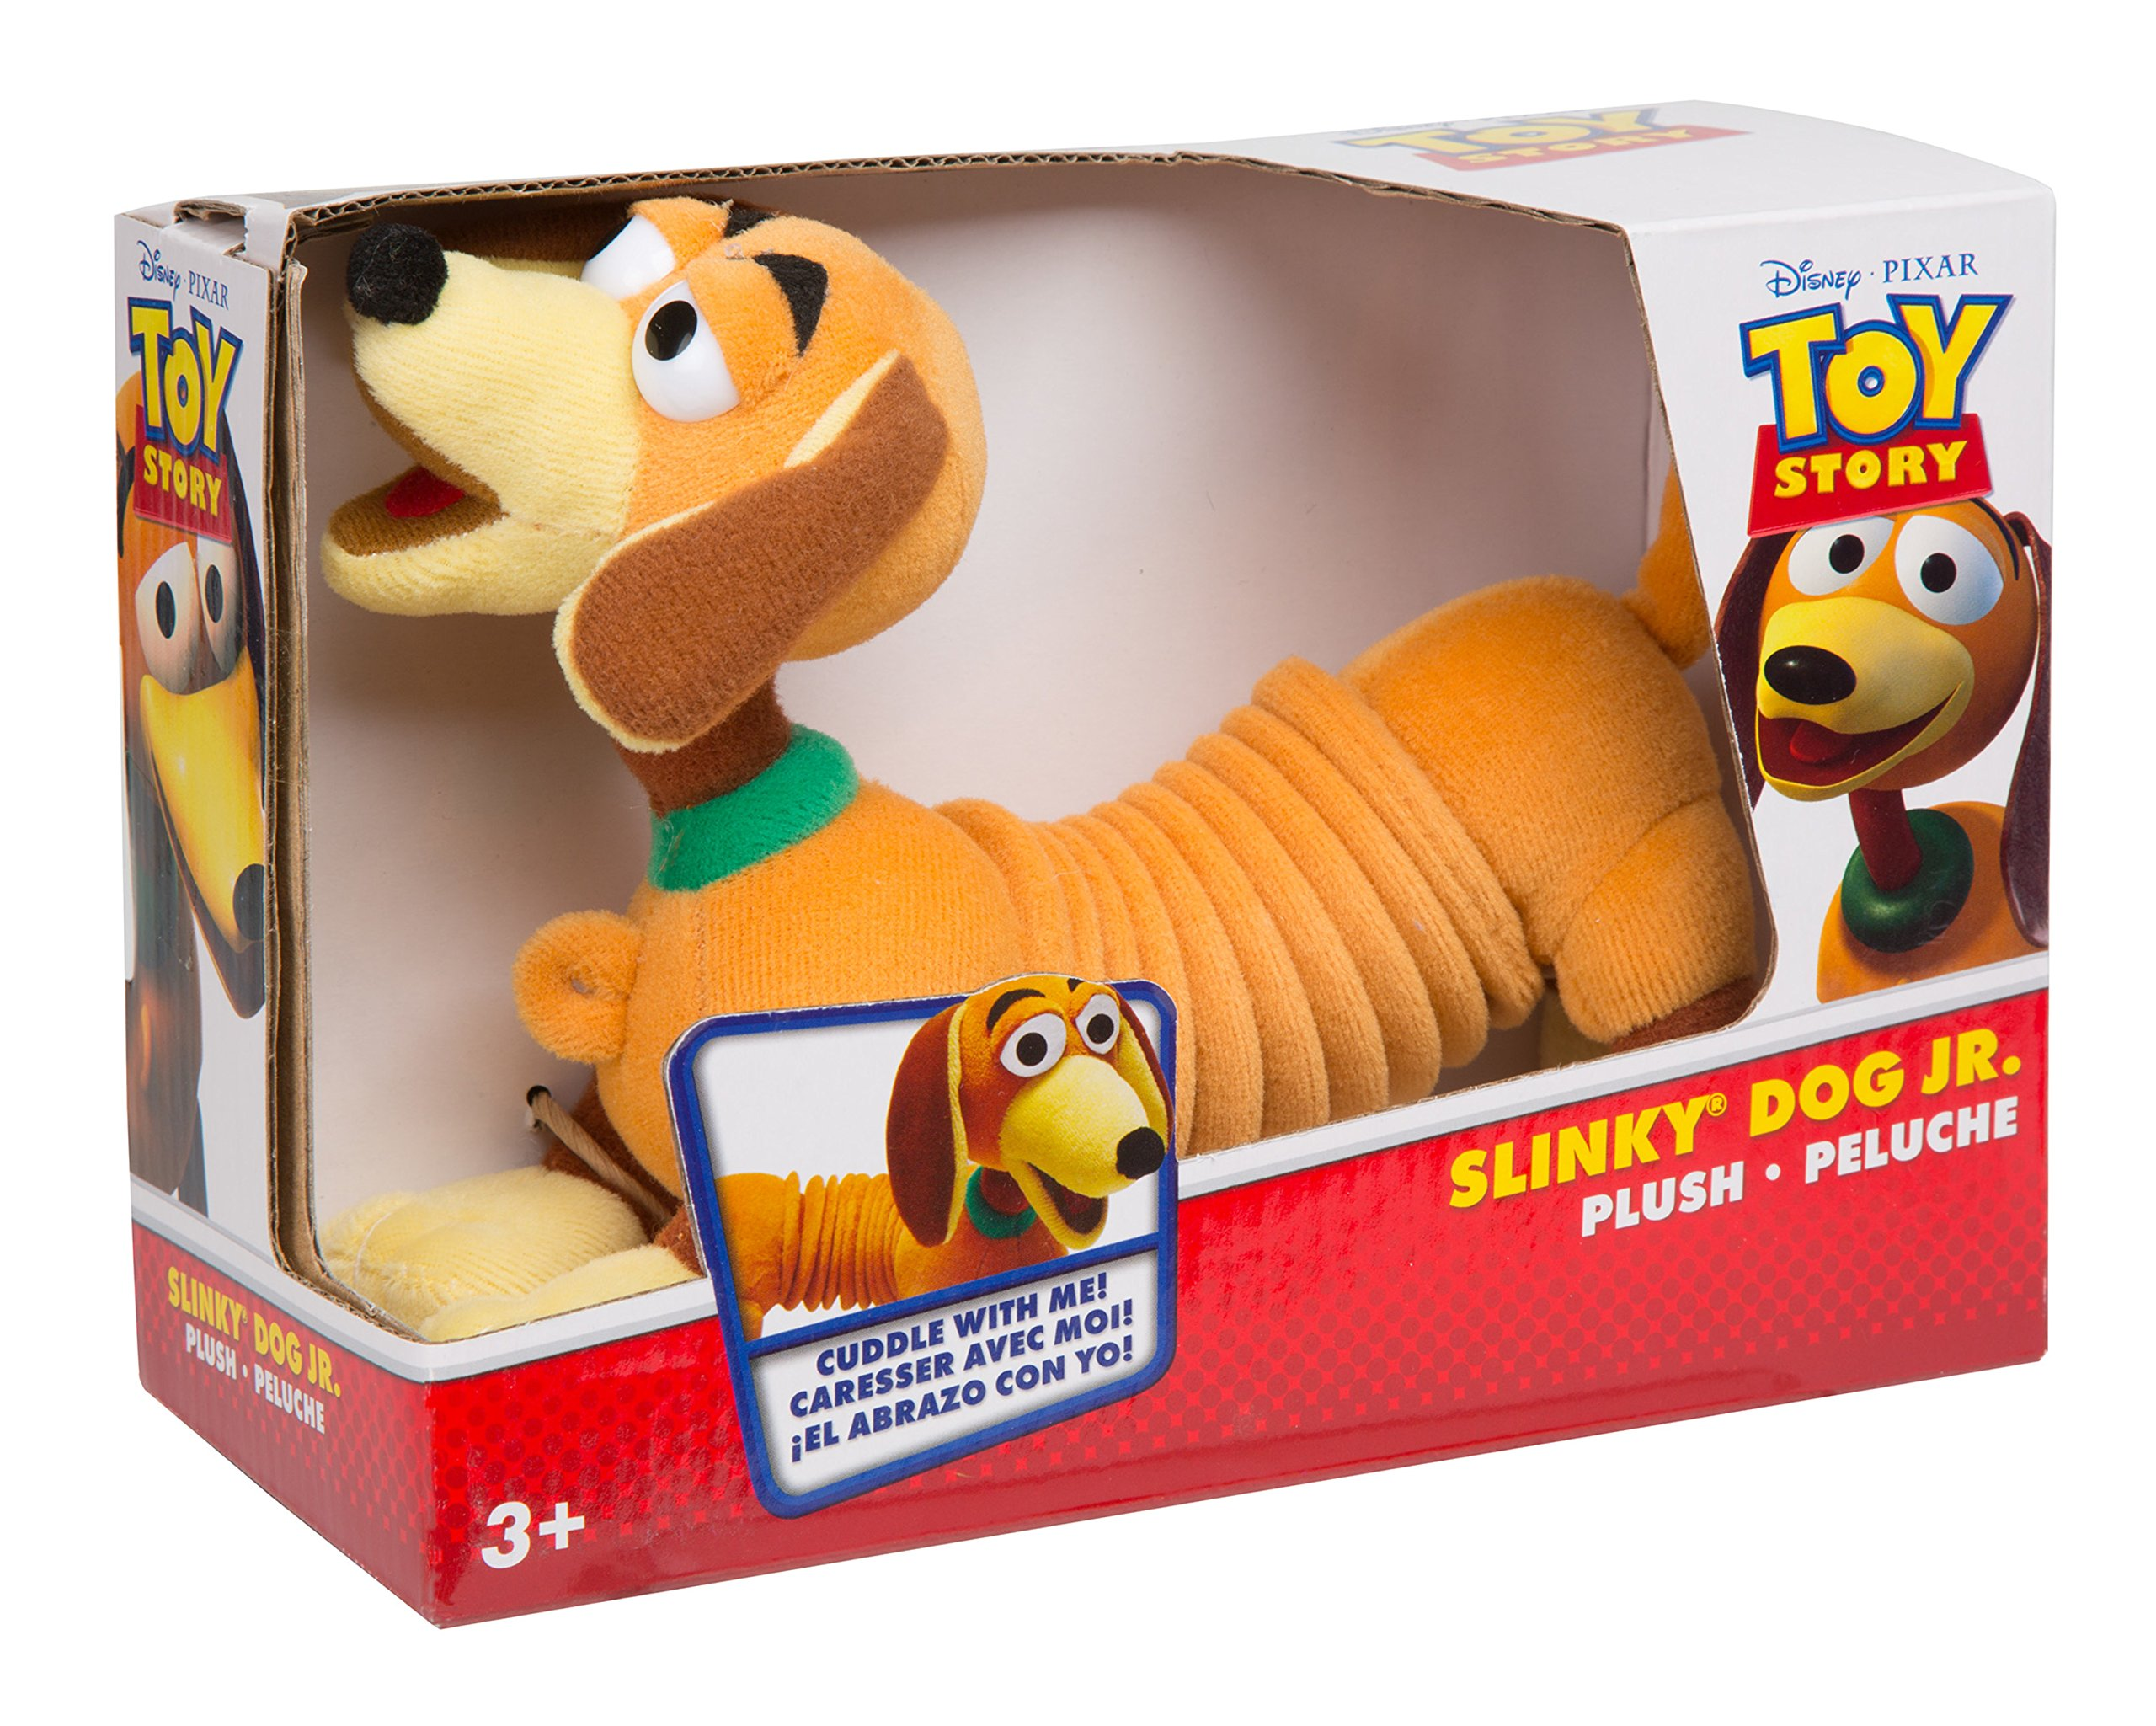 Disney Pixar Toy Story Slinky Dog Jr Plush by Slinky (Image #7)